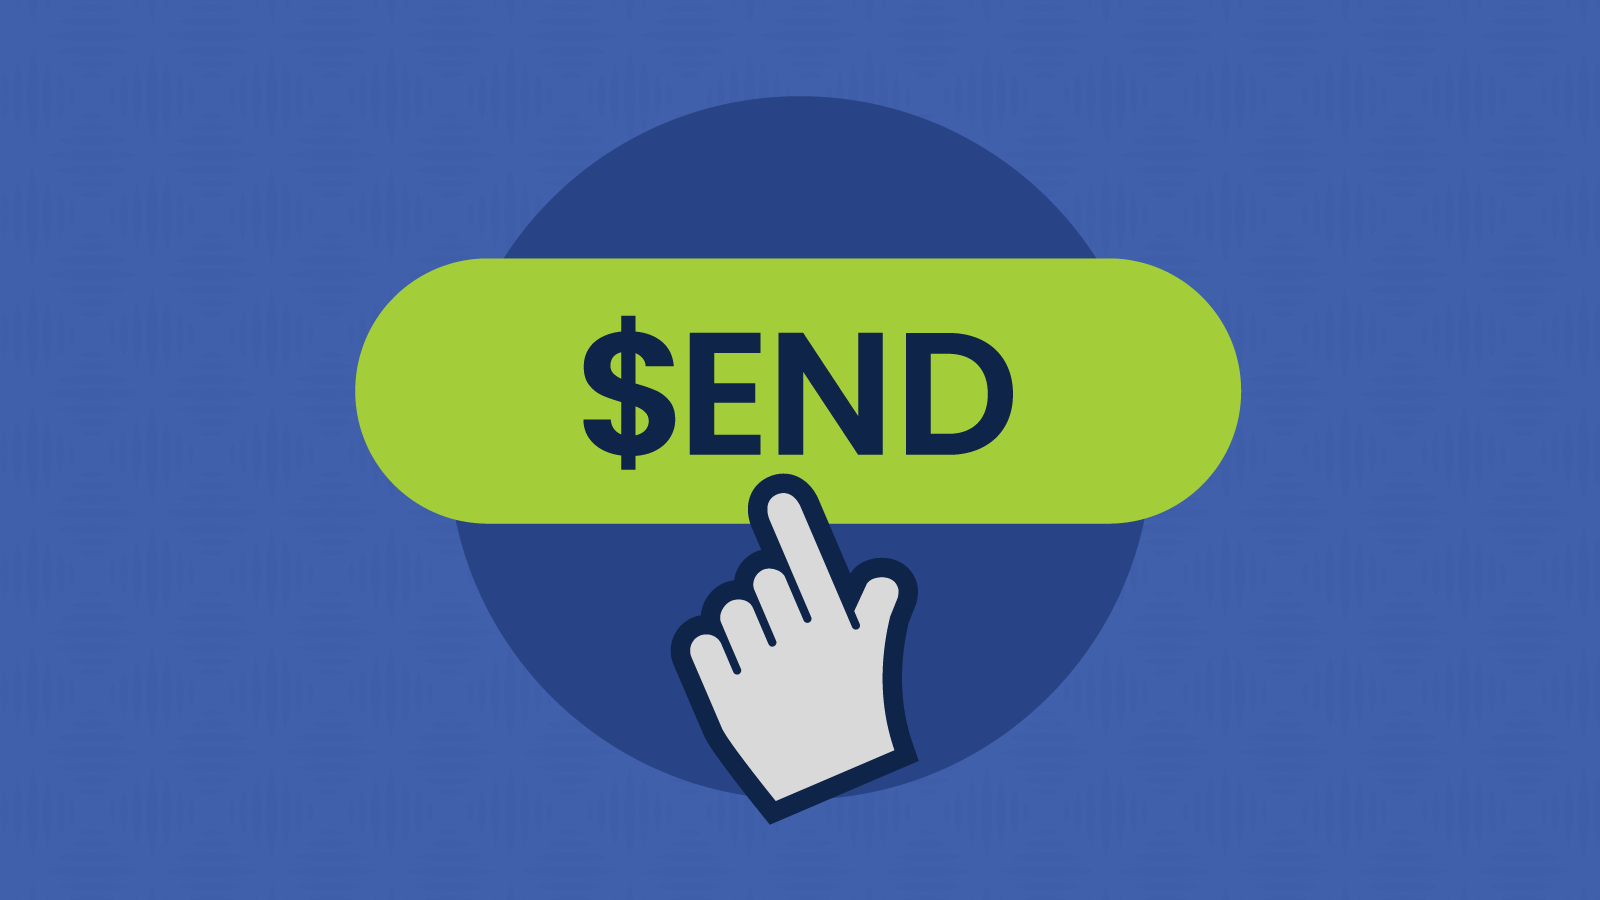 Finger clicks a send button with dollar sign that launches a paid newsletter